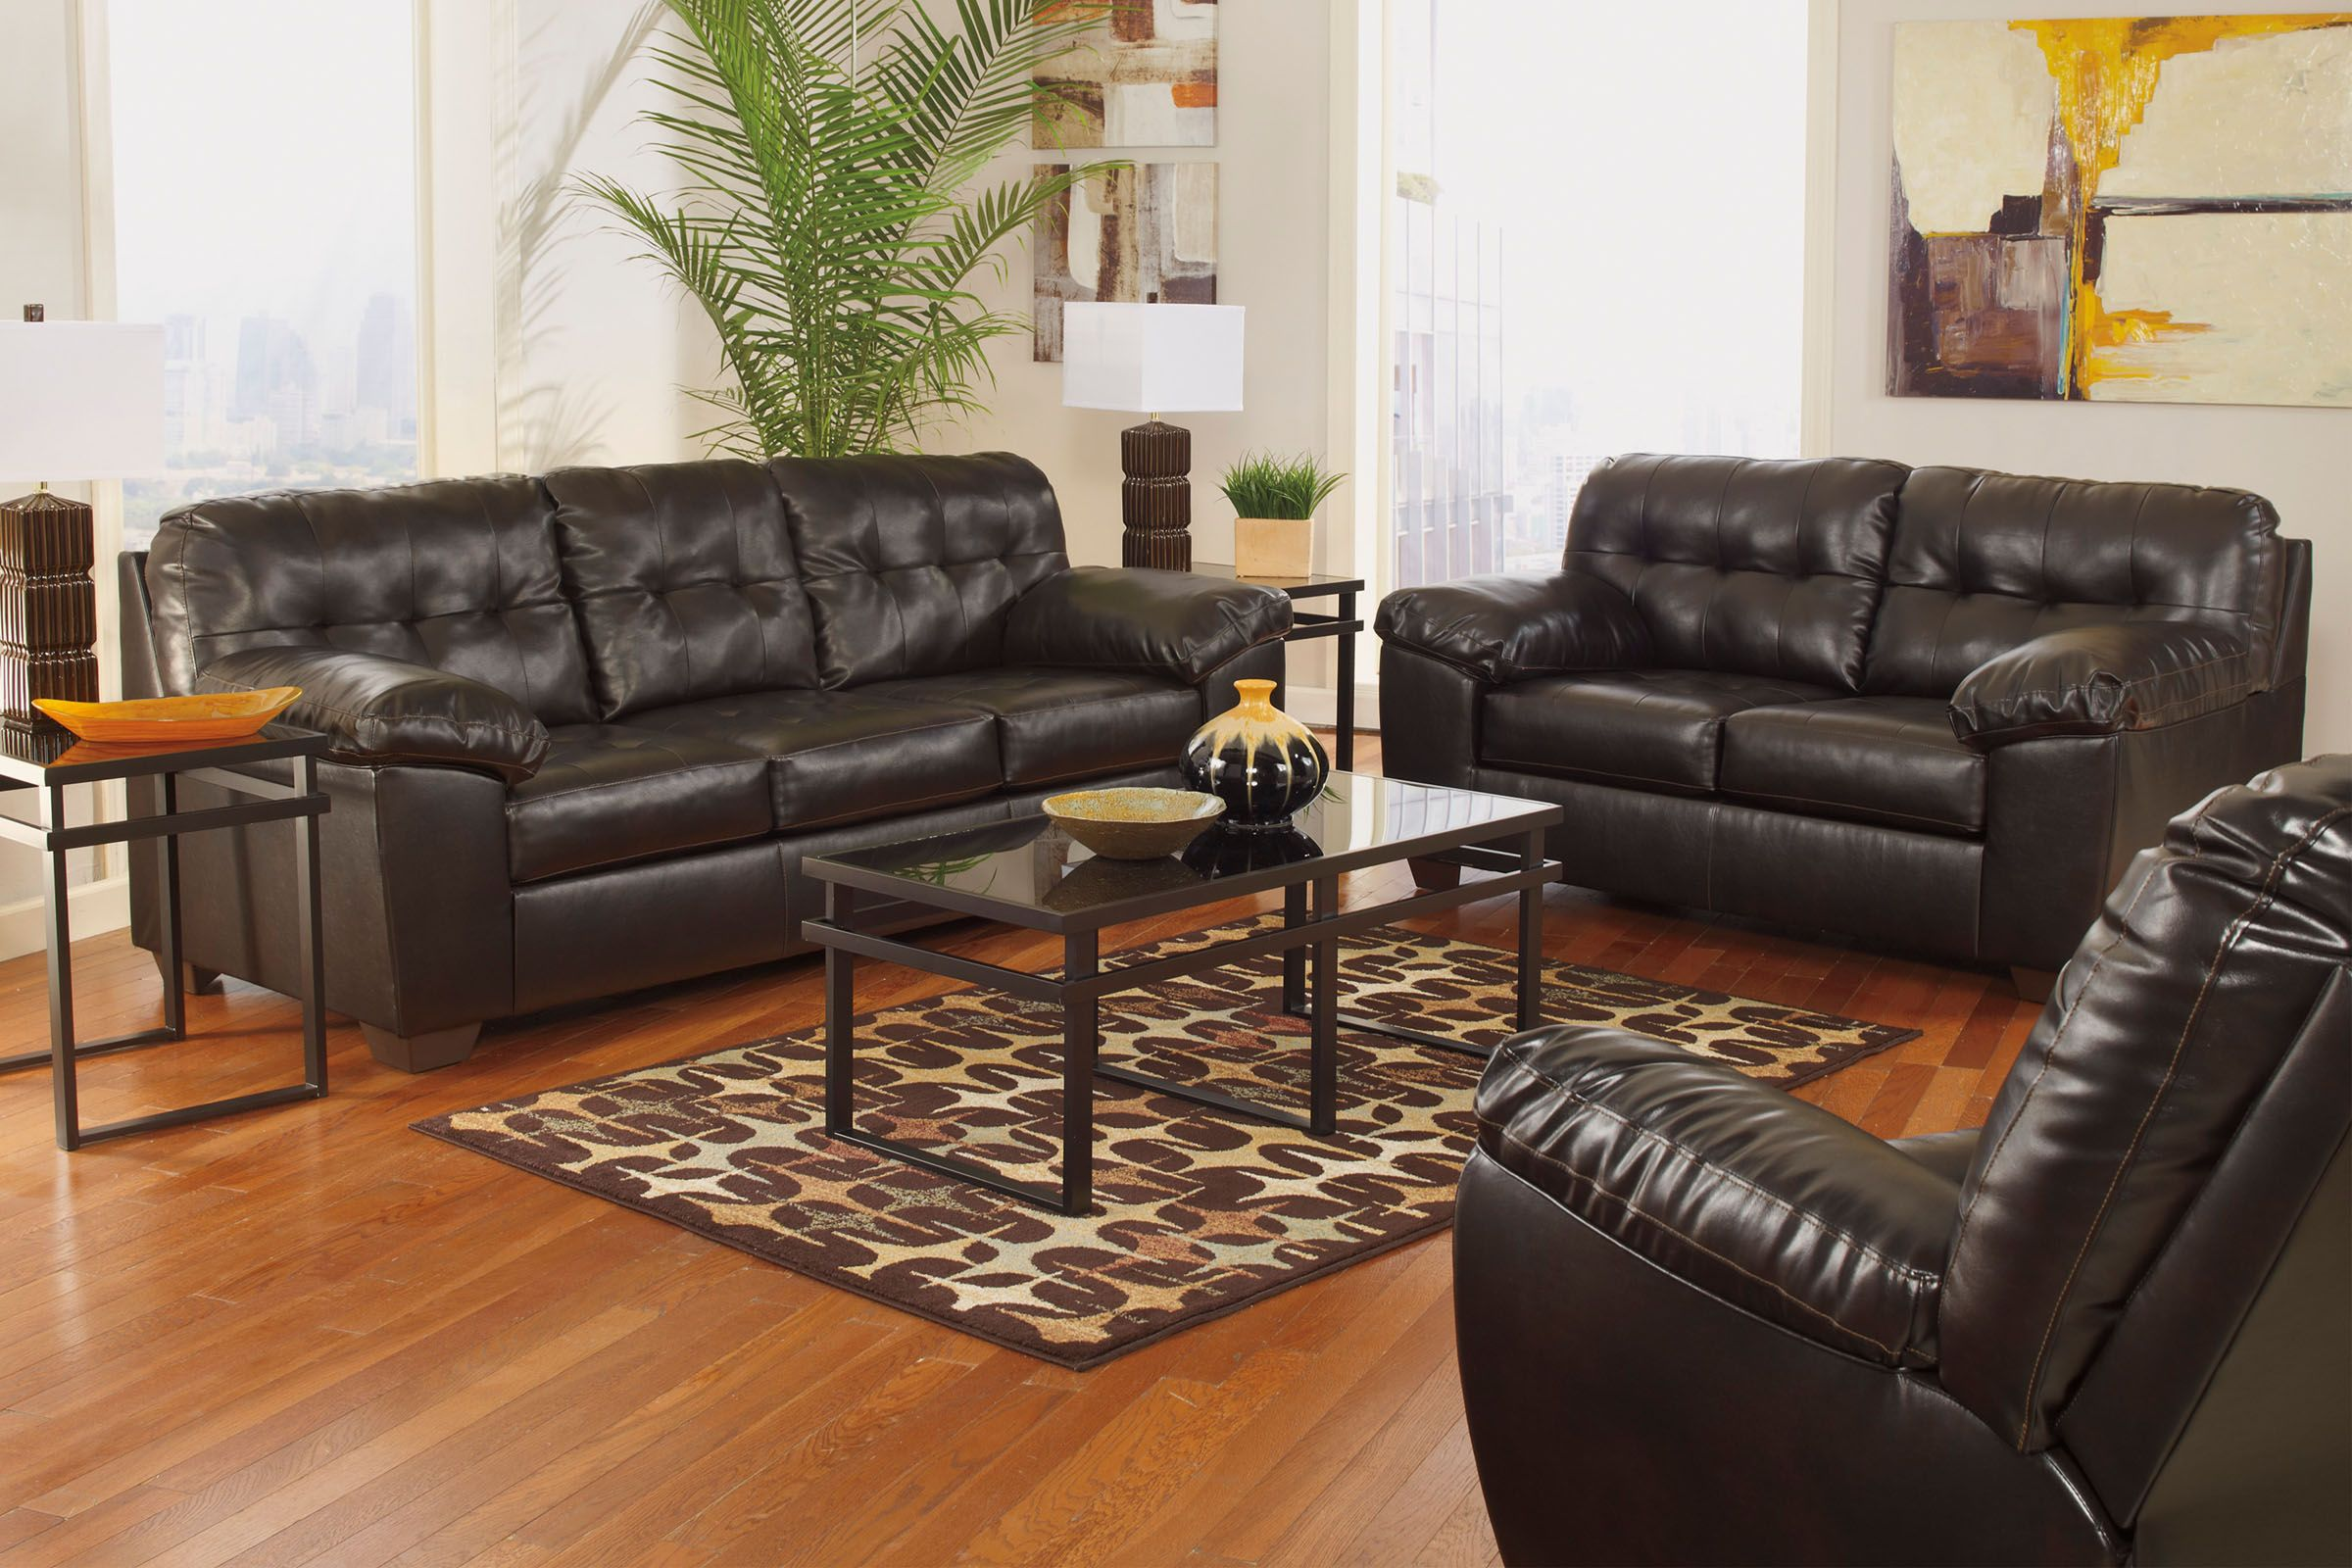 Alliston Queen Sleeper Sofa Living Room Sets Chocolate Living Rooms Living Room Furniture